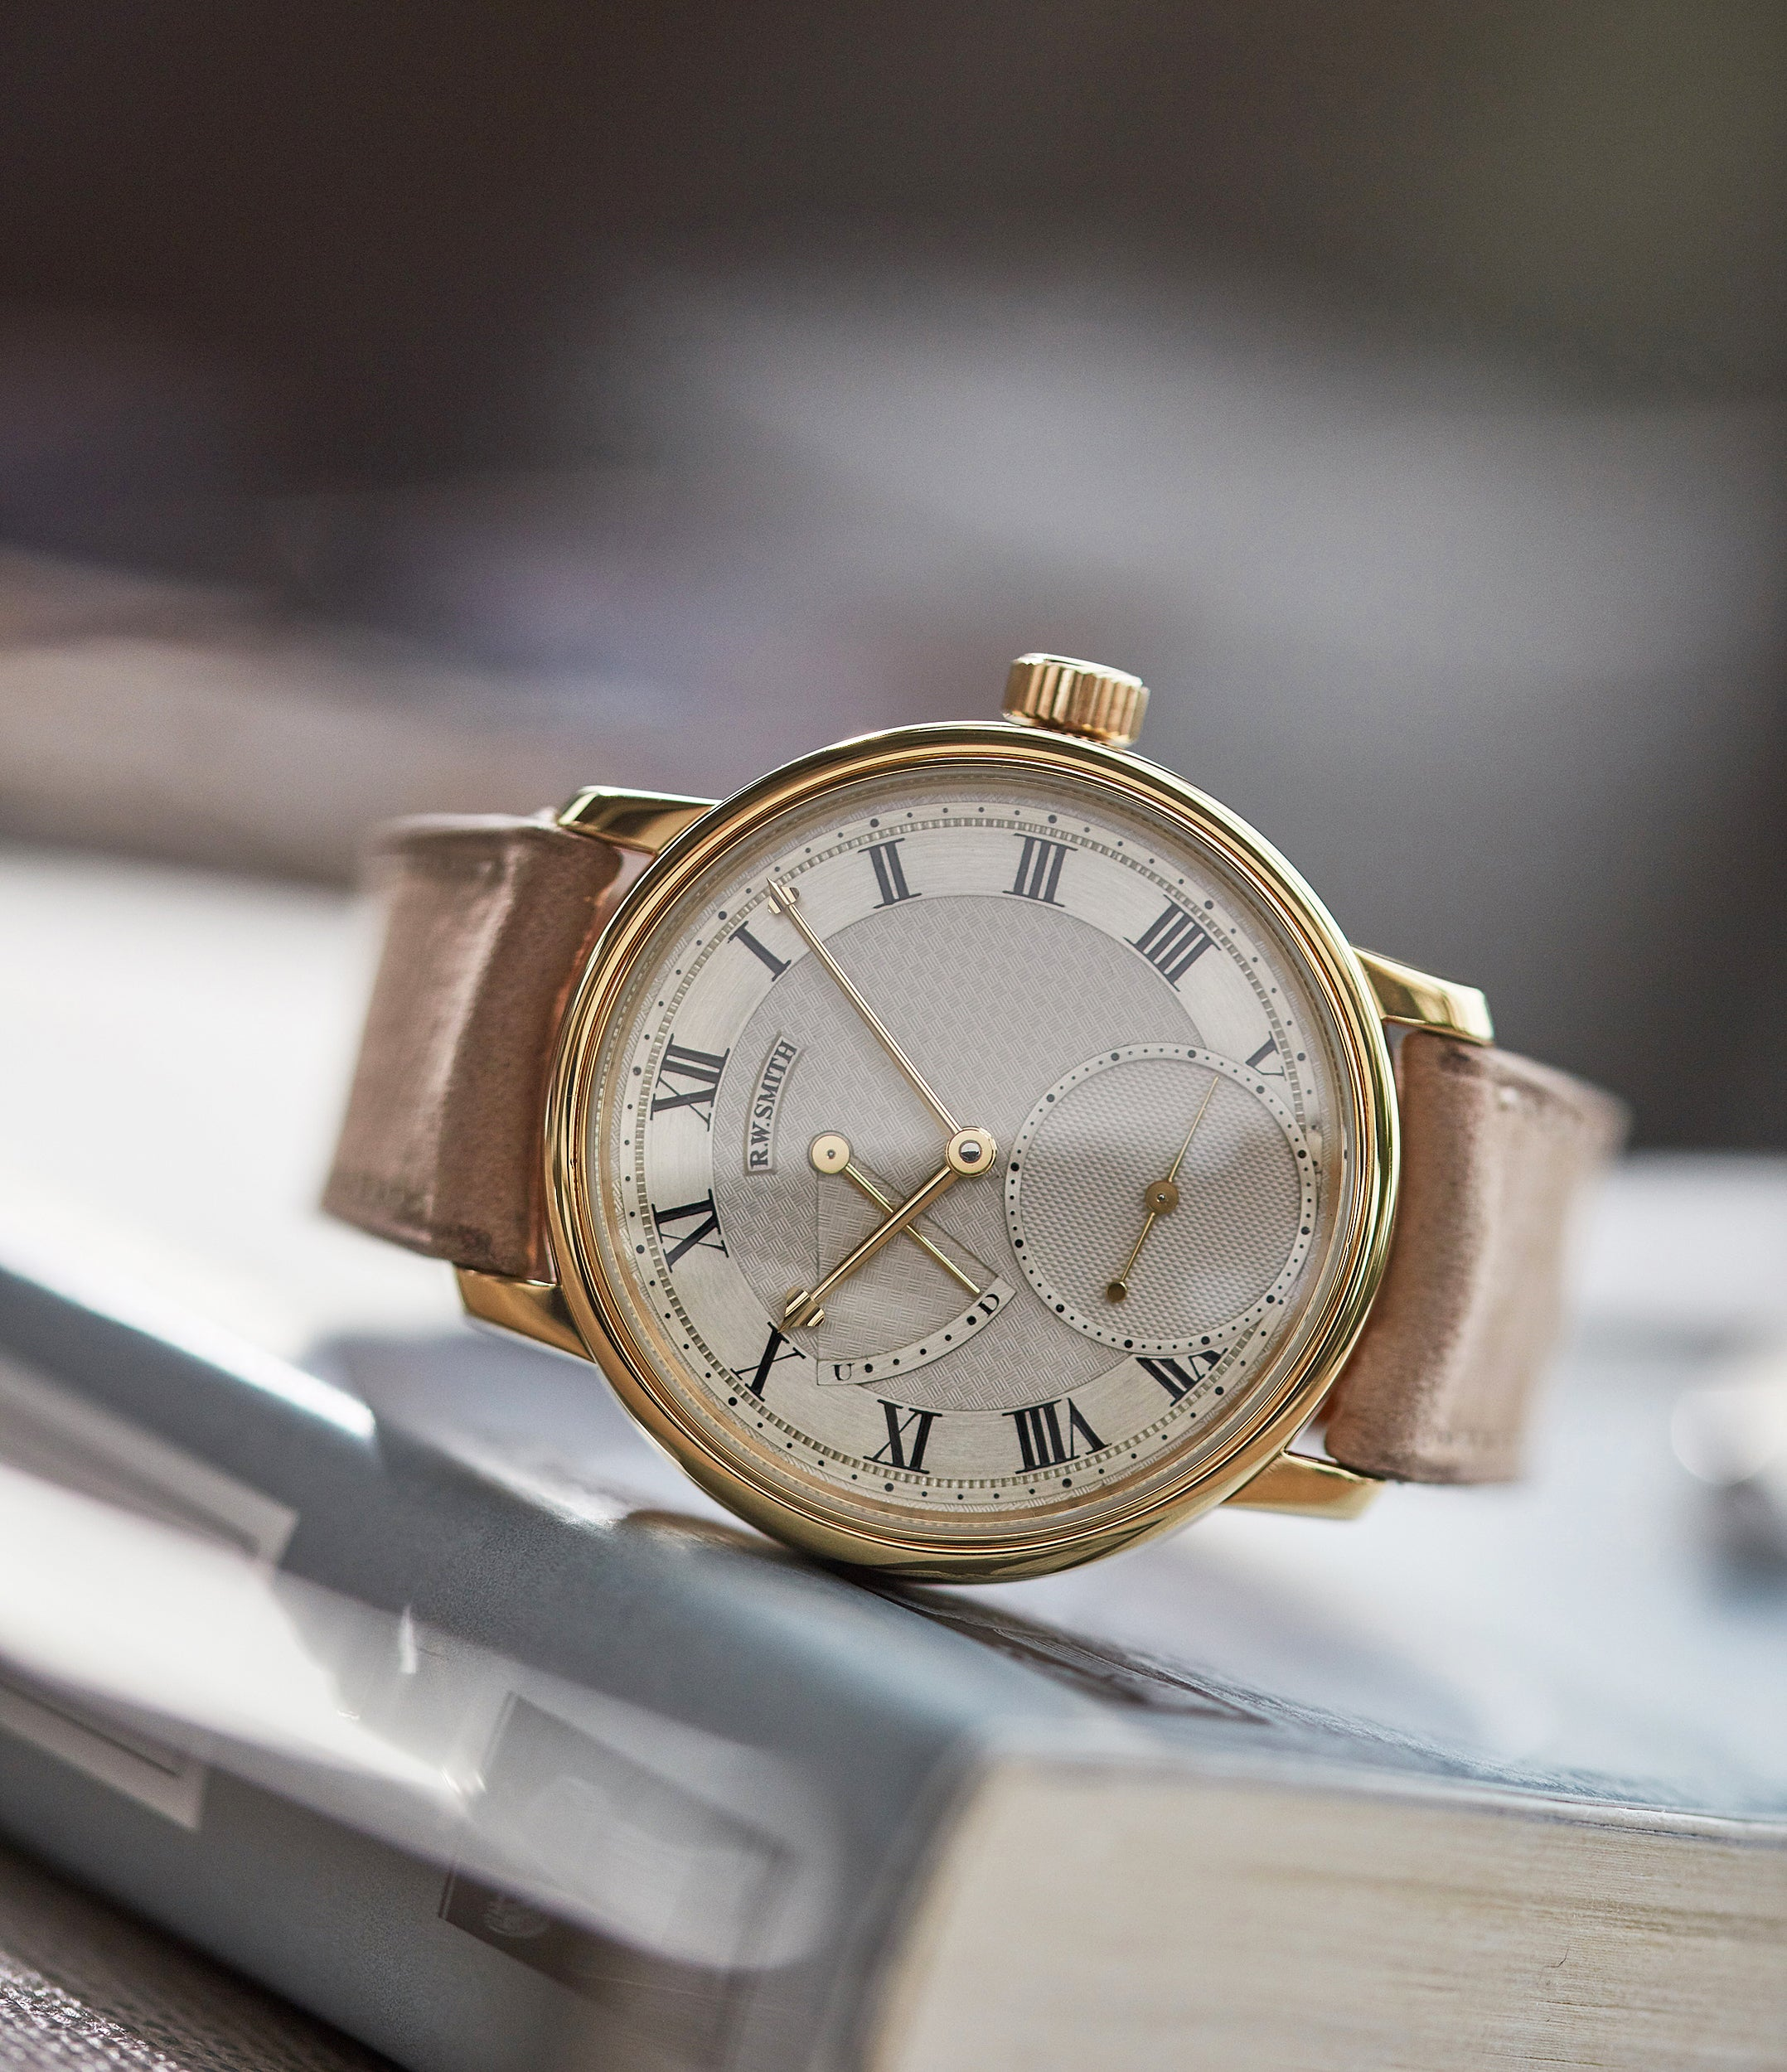 Roger W. Smith Series 2 yellow gold early pre-owned independent watchmaker for sale online A Collected Man exclusively approved re-seller Roger Smith